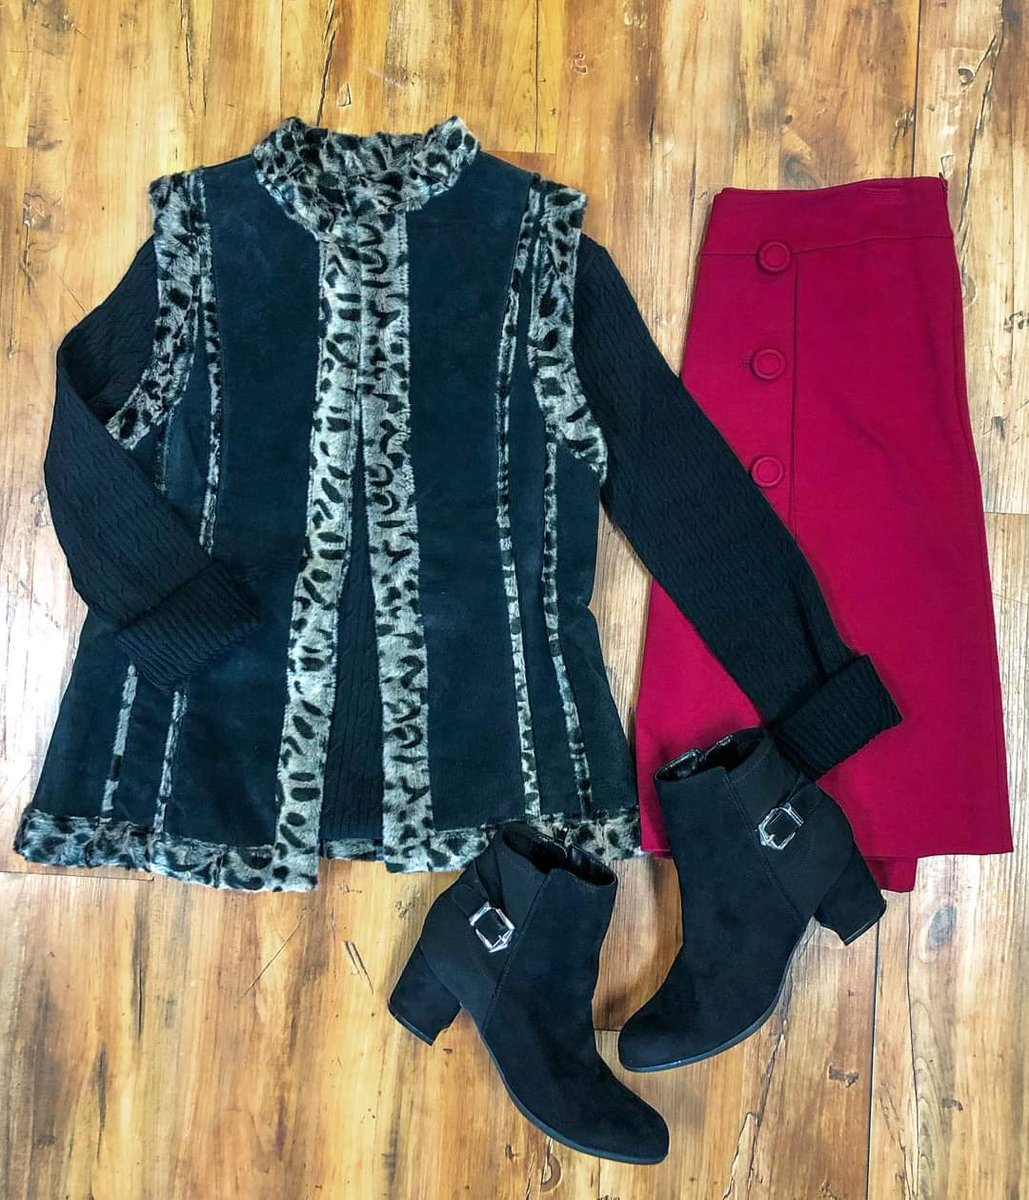 Outfit of the Day ❤️  Outfit Details:  🖤Sweater: sz. M $24.99 🖤Vest: sz. S $34.99 🖤Skirt: sz. 8P $16.99 🖤Booties: sz. 7.5 $29.99